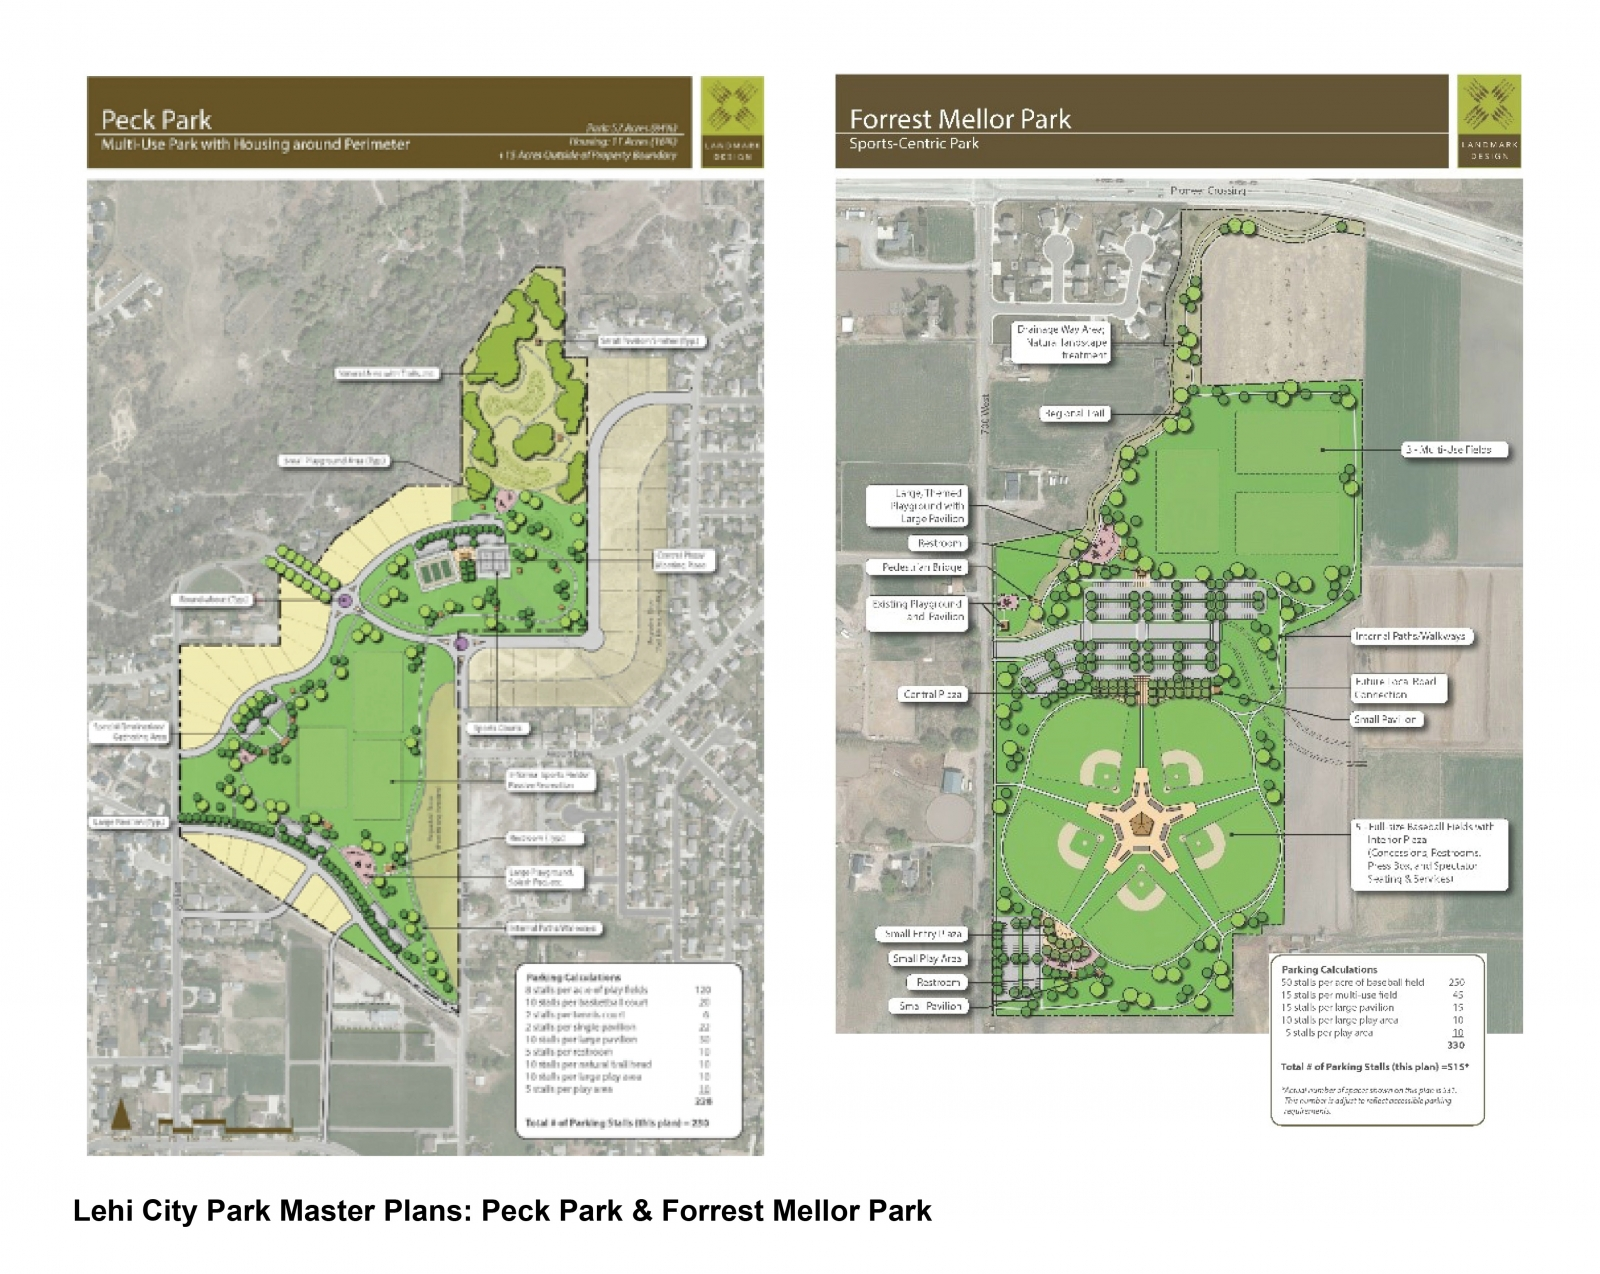 Park Design & Implementation